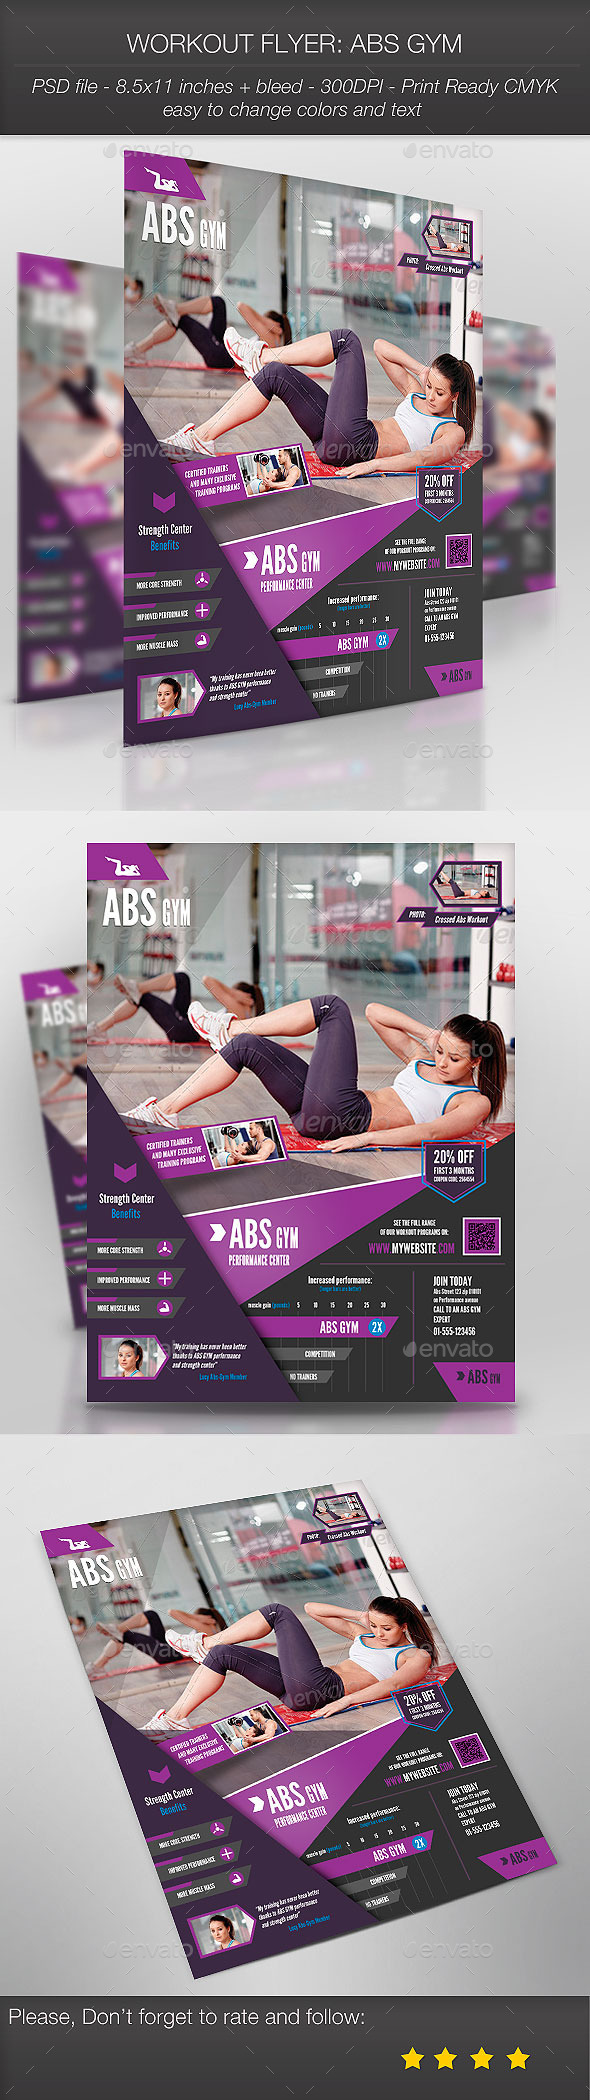 GraphicRiver Workout Flyer Abs Gym 9255876